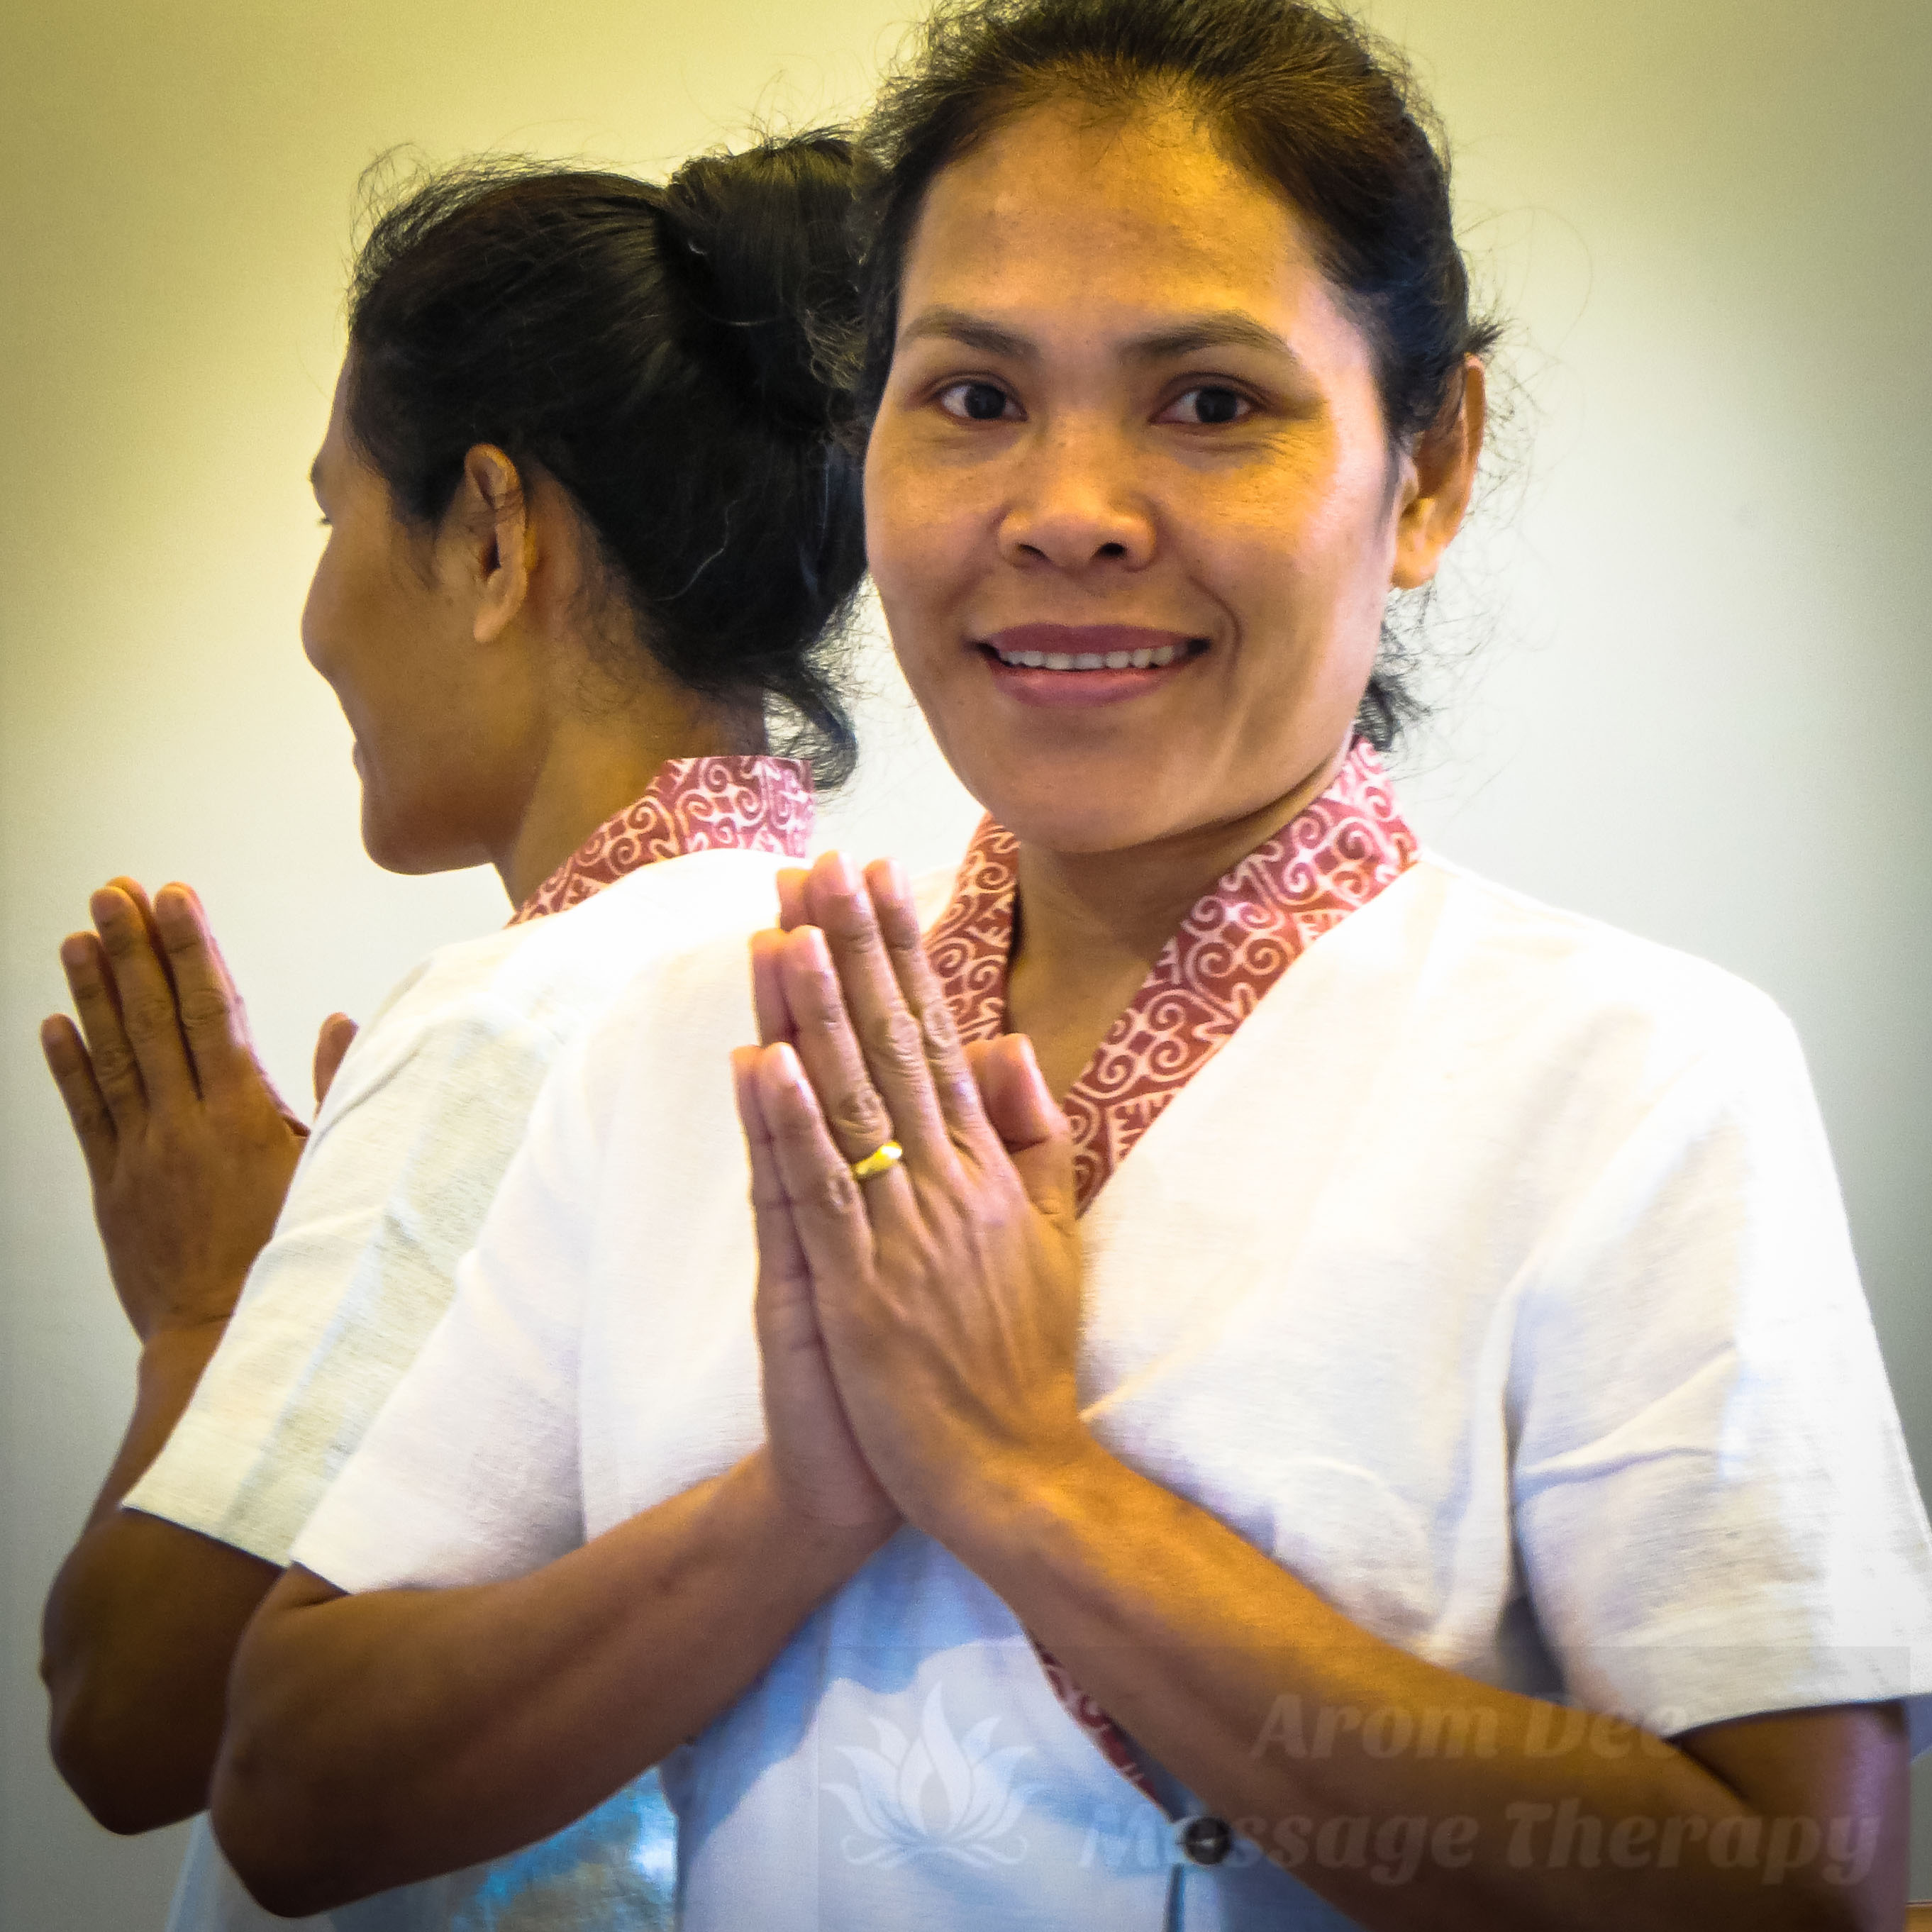 Masseuse wearing white Thai style massage therapist's tunic holdin hands together at heart level in Thai Wai